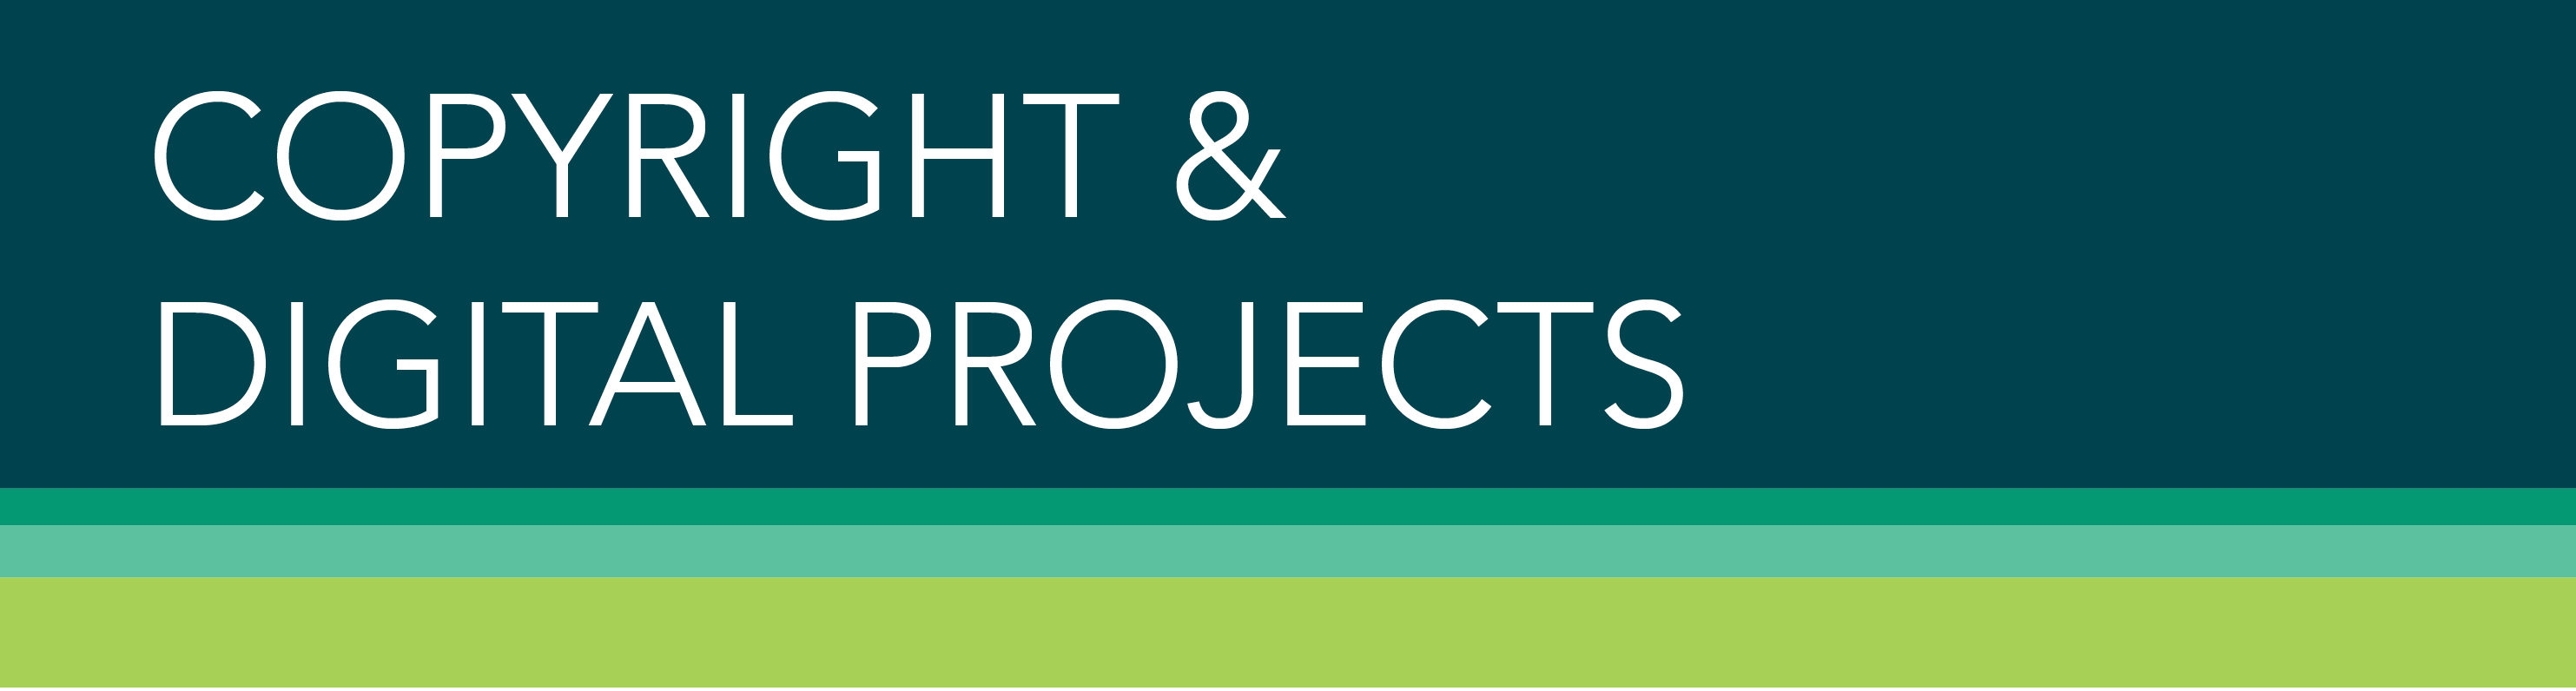 Copyright & Digital Projects Banner